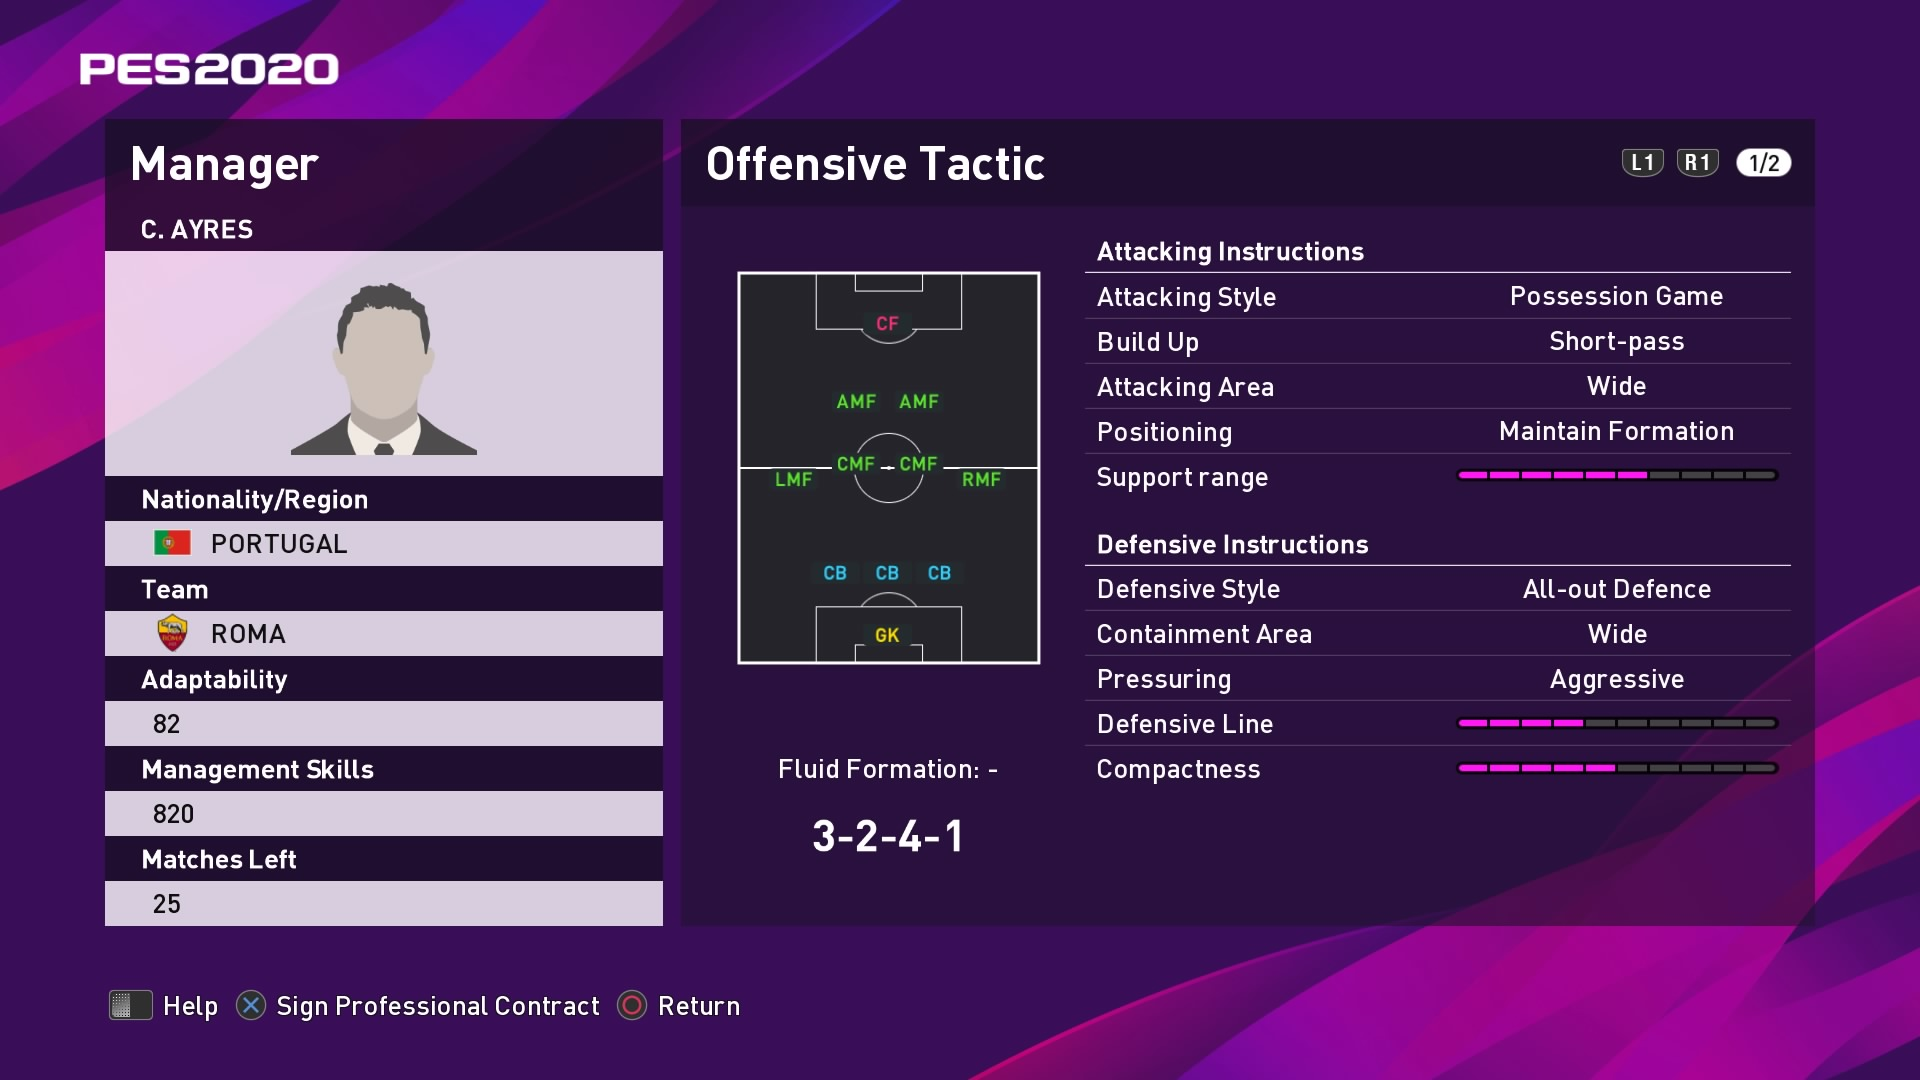 C. Ayres (2) (Paulo Fonseca) Offensive Tactic in PES 2020 myClub